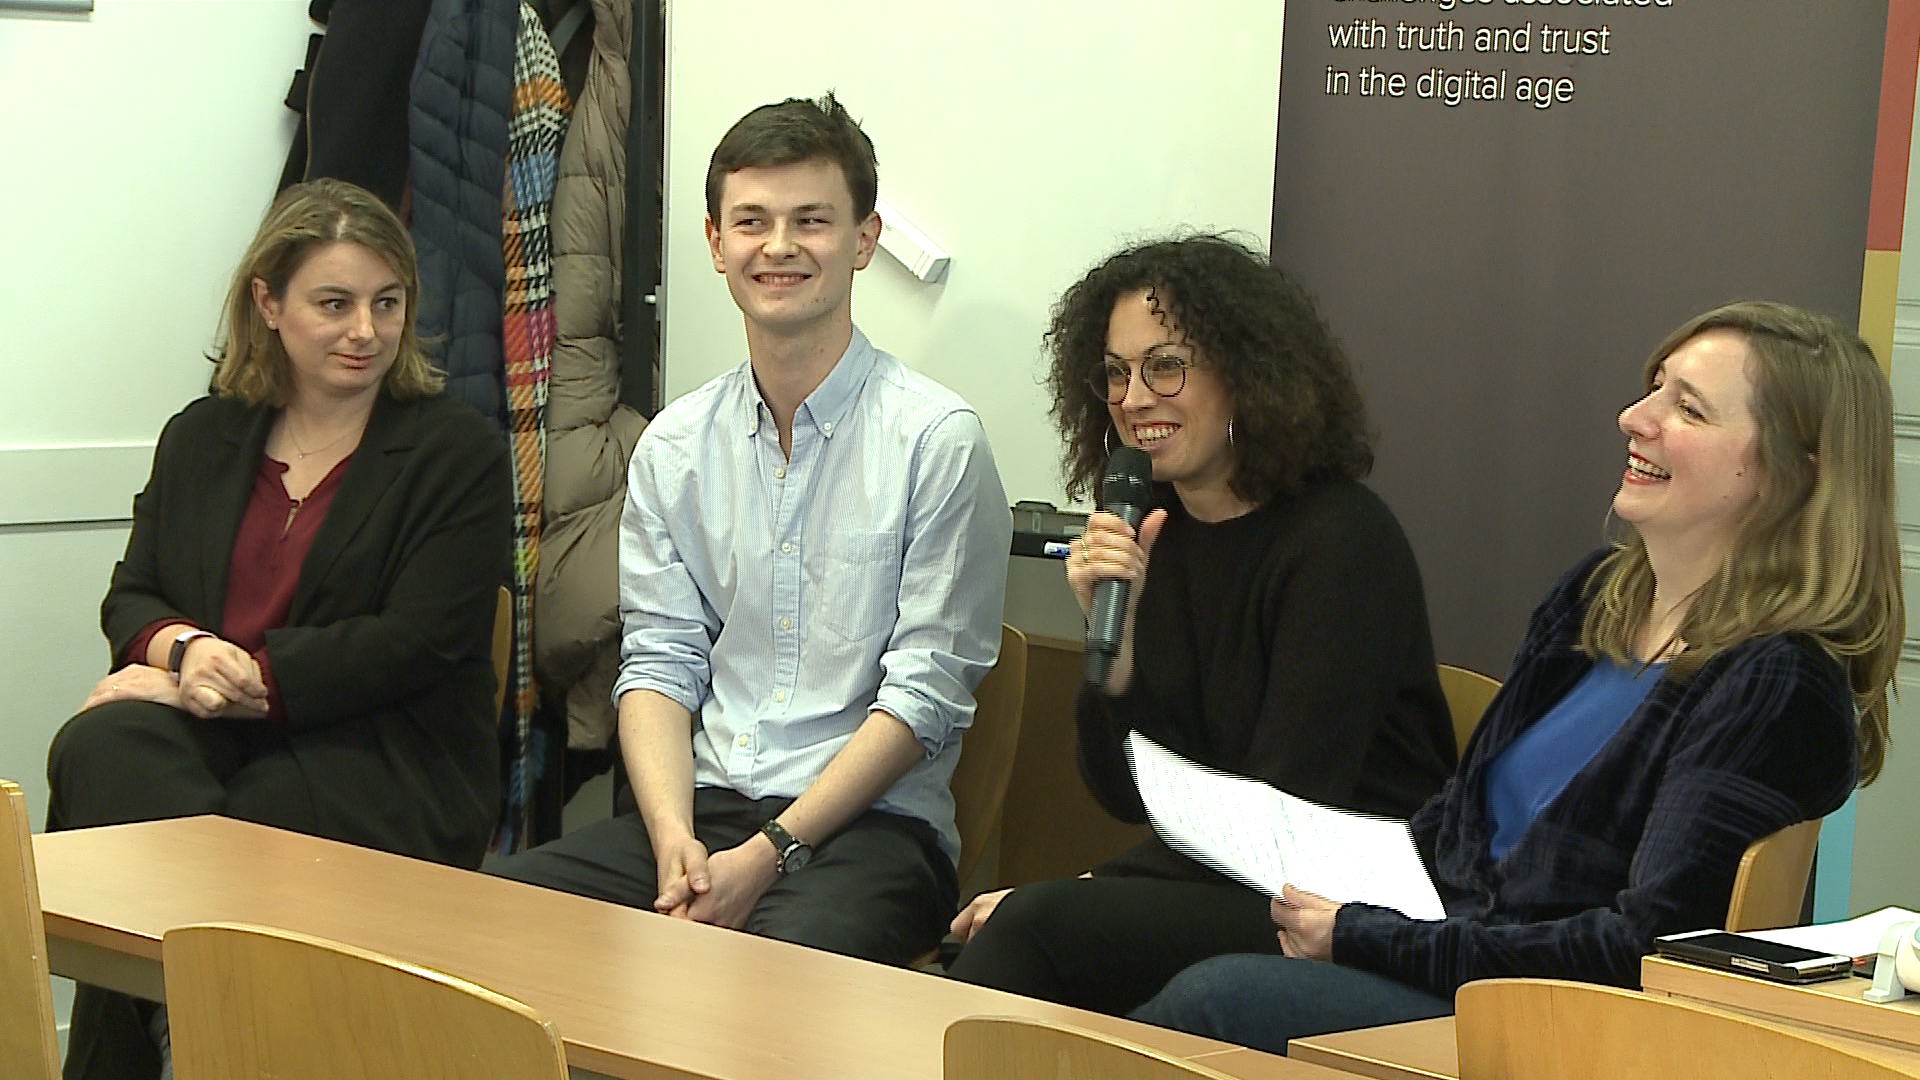 Panelists, Masterclass at Sciences Po Journalism School, March 6th, 2020